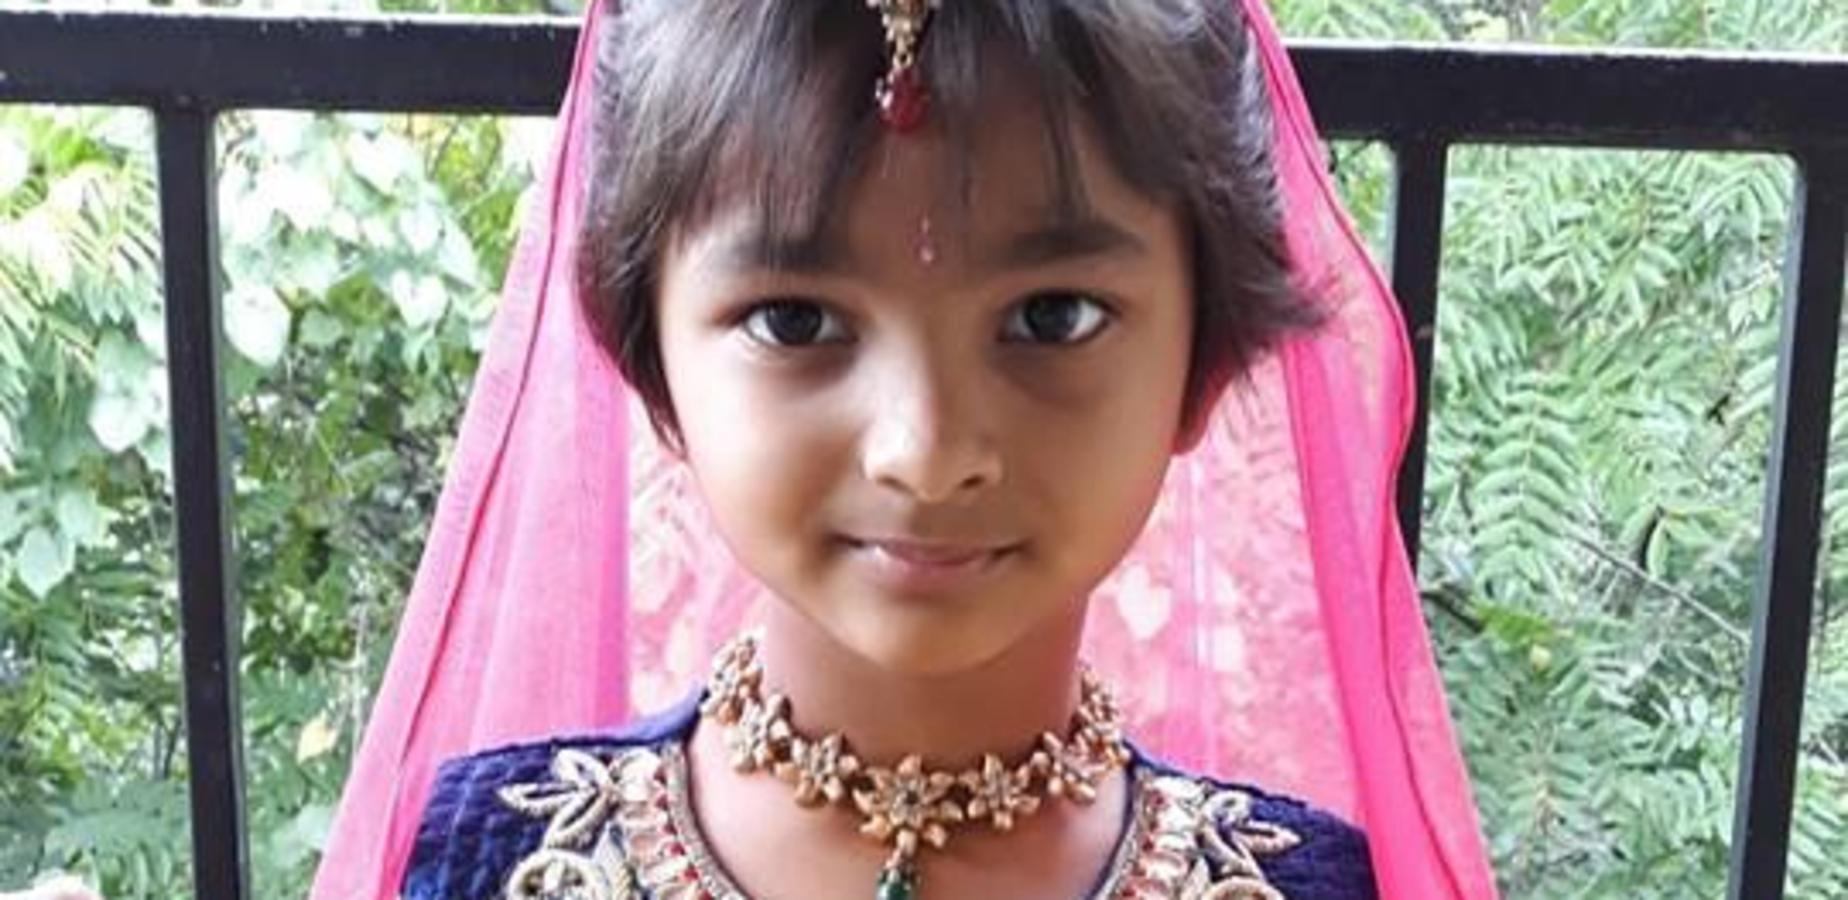 This is a photo of a student of Indian descent wearing the traditional dress of her family's country. She is wearing a pink head scarf with a jewel in the front, as well as a necklace and purple garment.